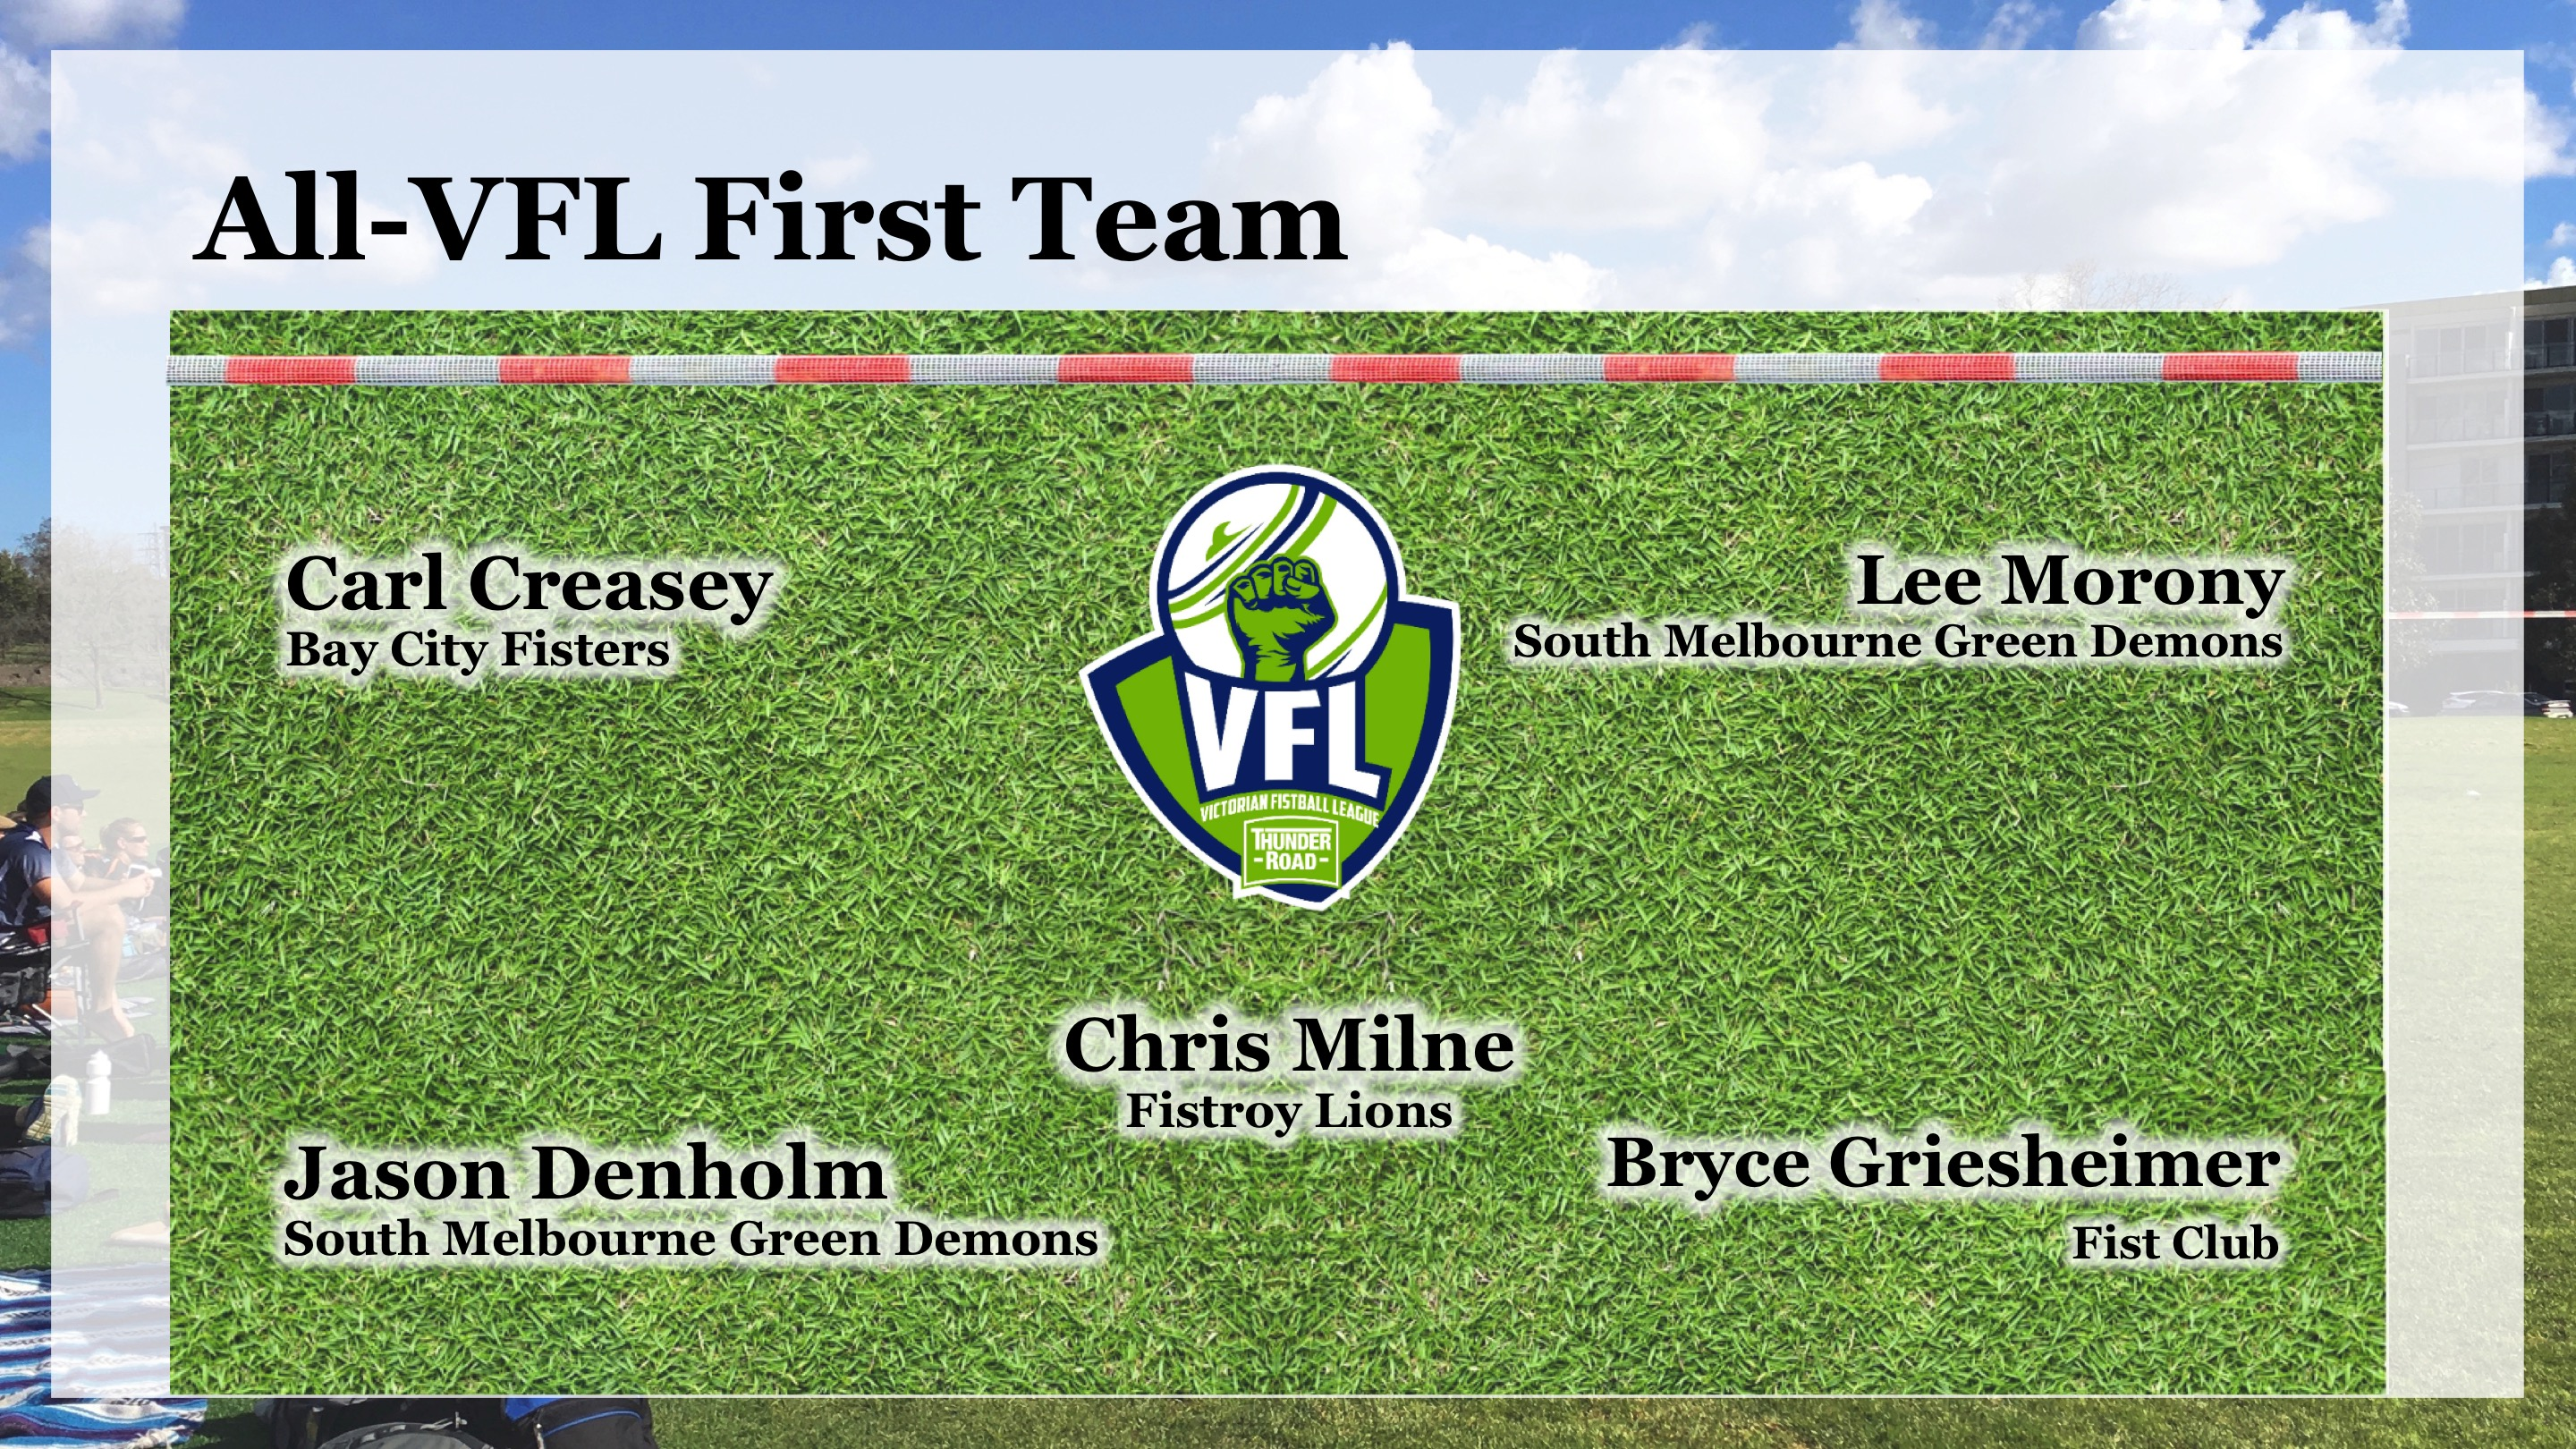 All-VFL First Team